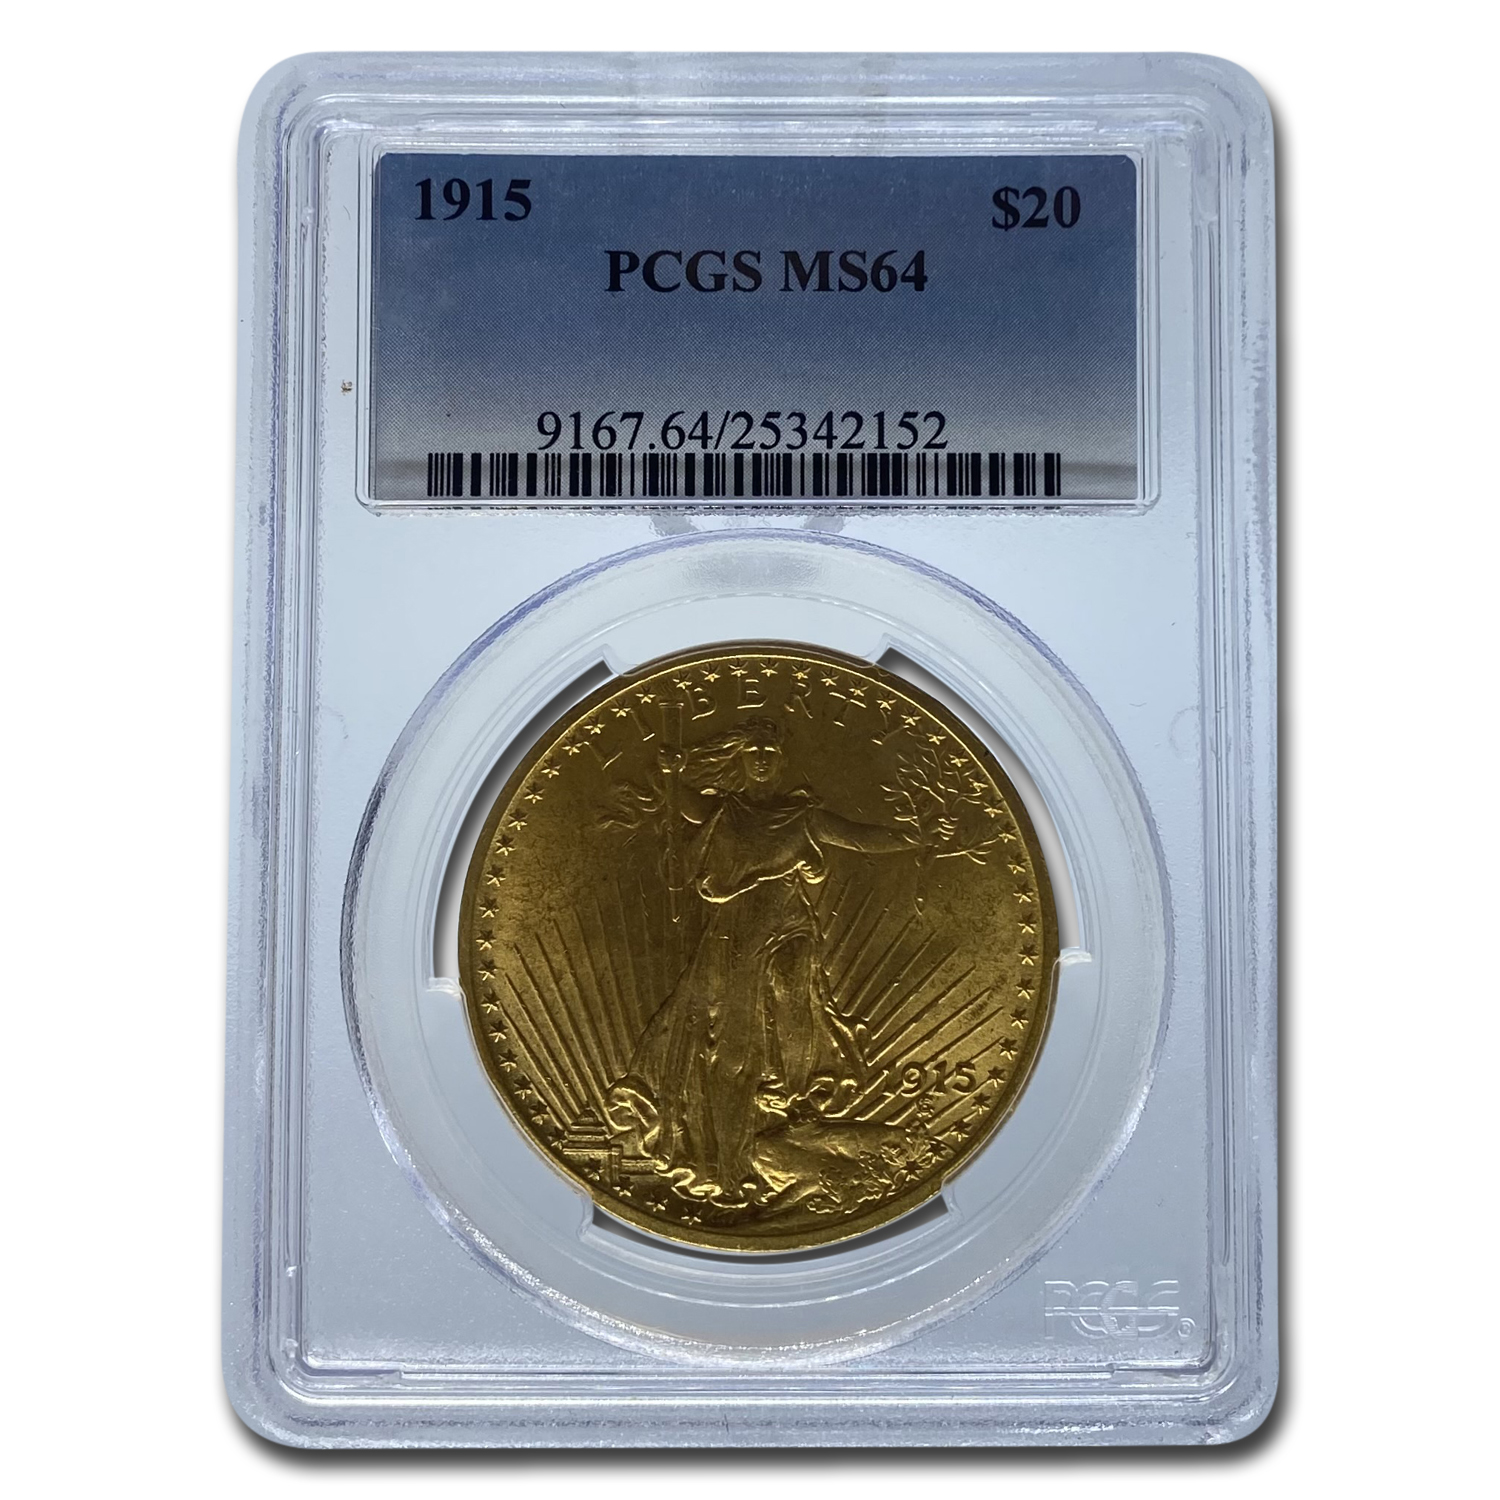 1915 $20 St. Gaudens Gold Double Eagle - MS-64 PCGS